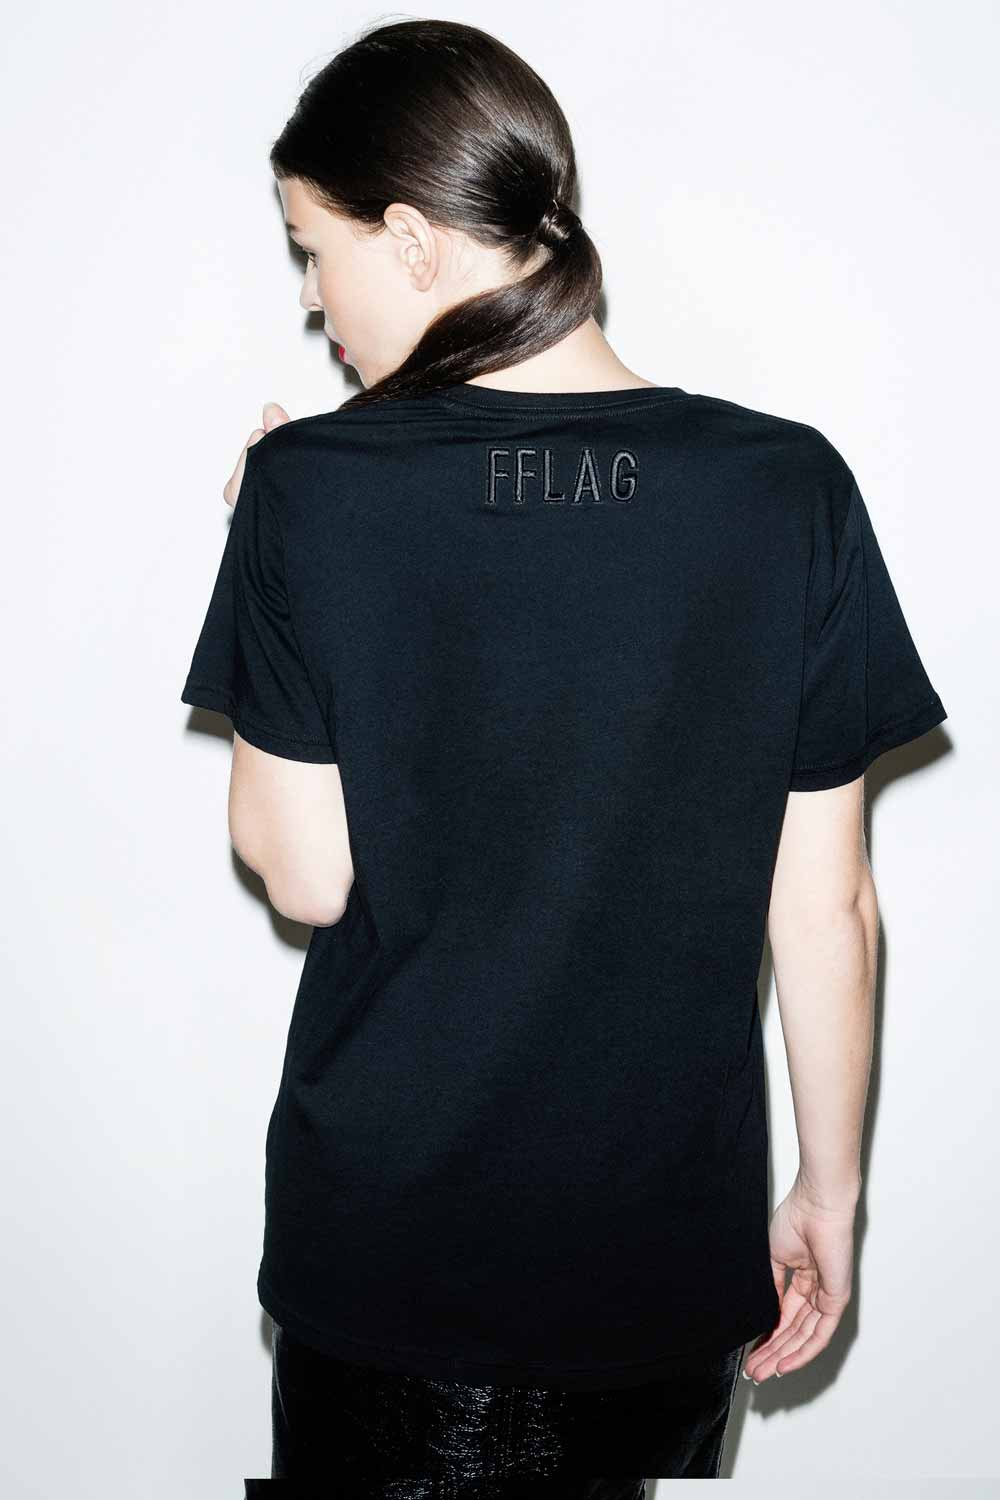 FFLAG Paris – Fight for love and glory – T-shirt rebels noir – dos